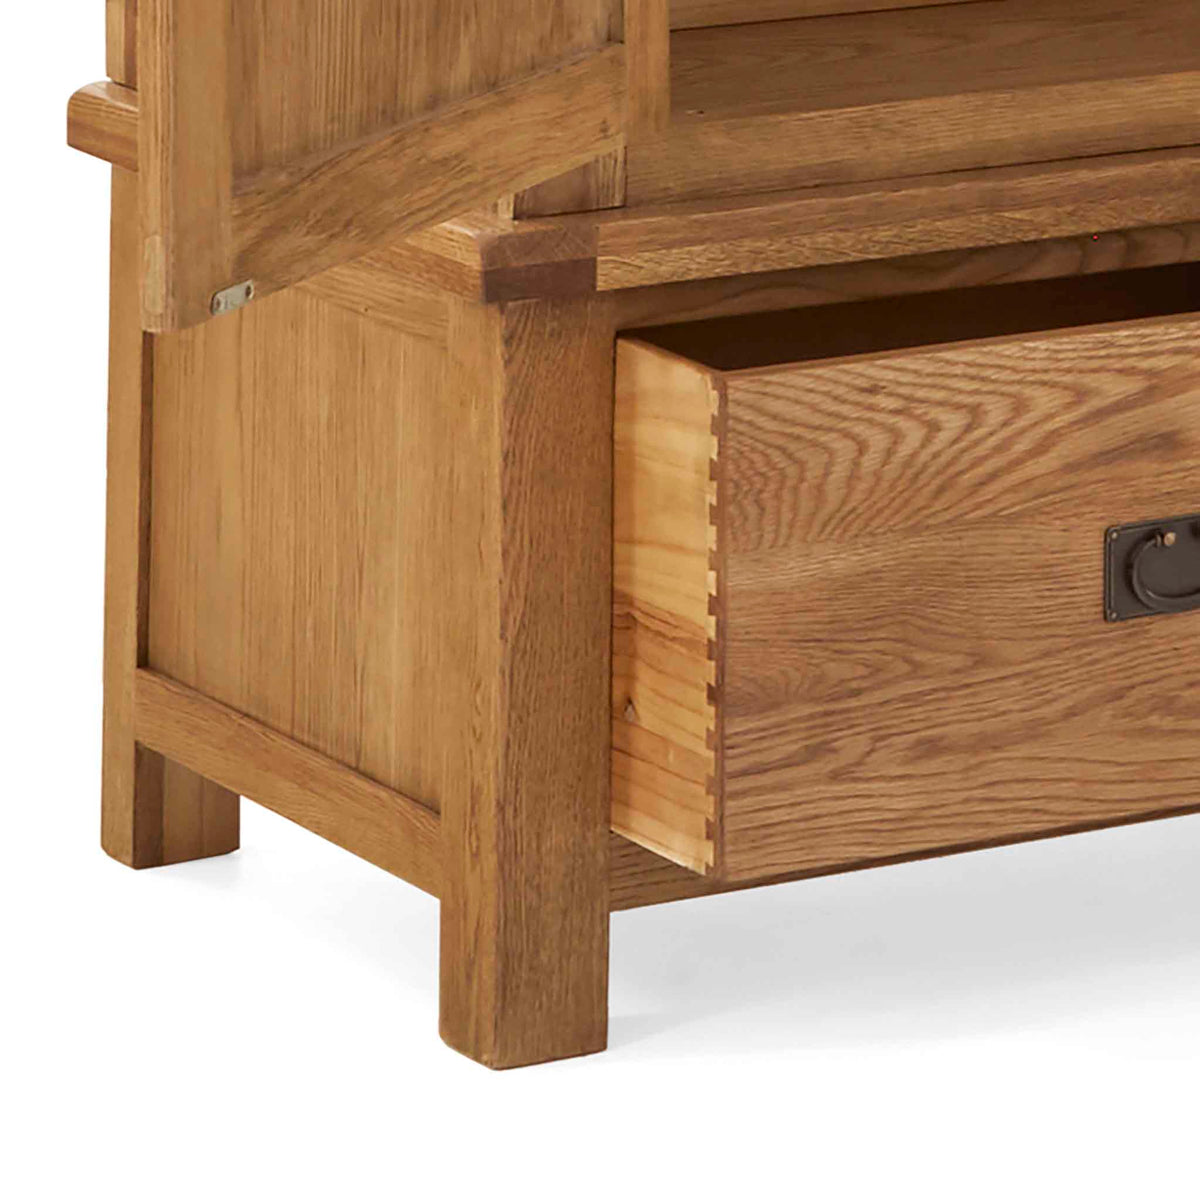 Zelah Oak Large Triple Wardrobe with Drawers - Close up of feet on wardrobe